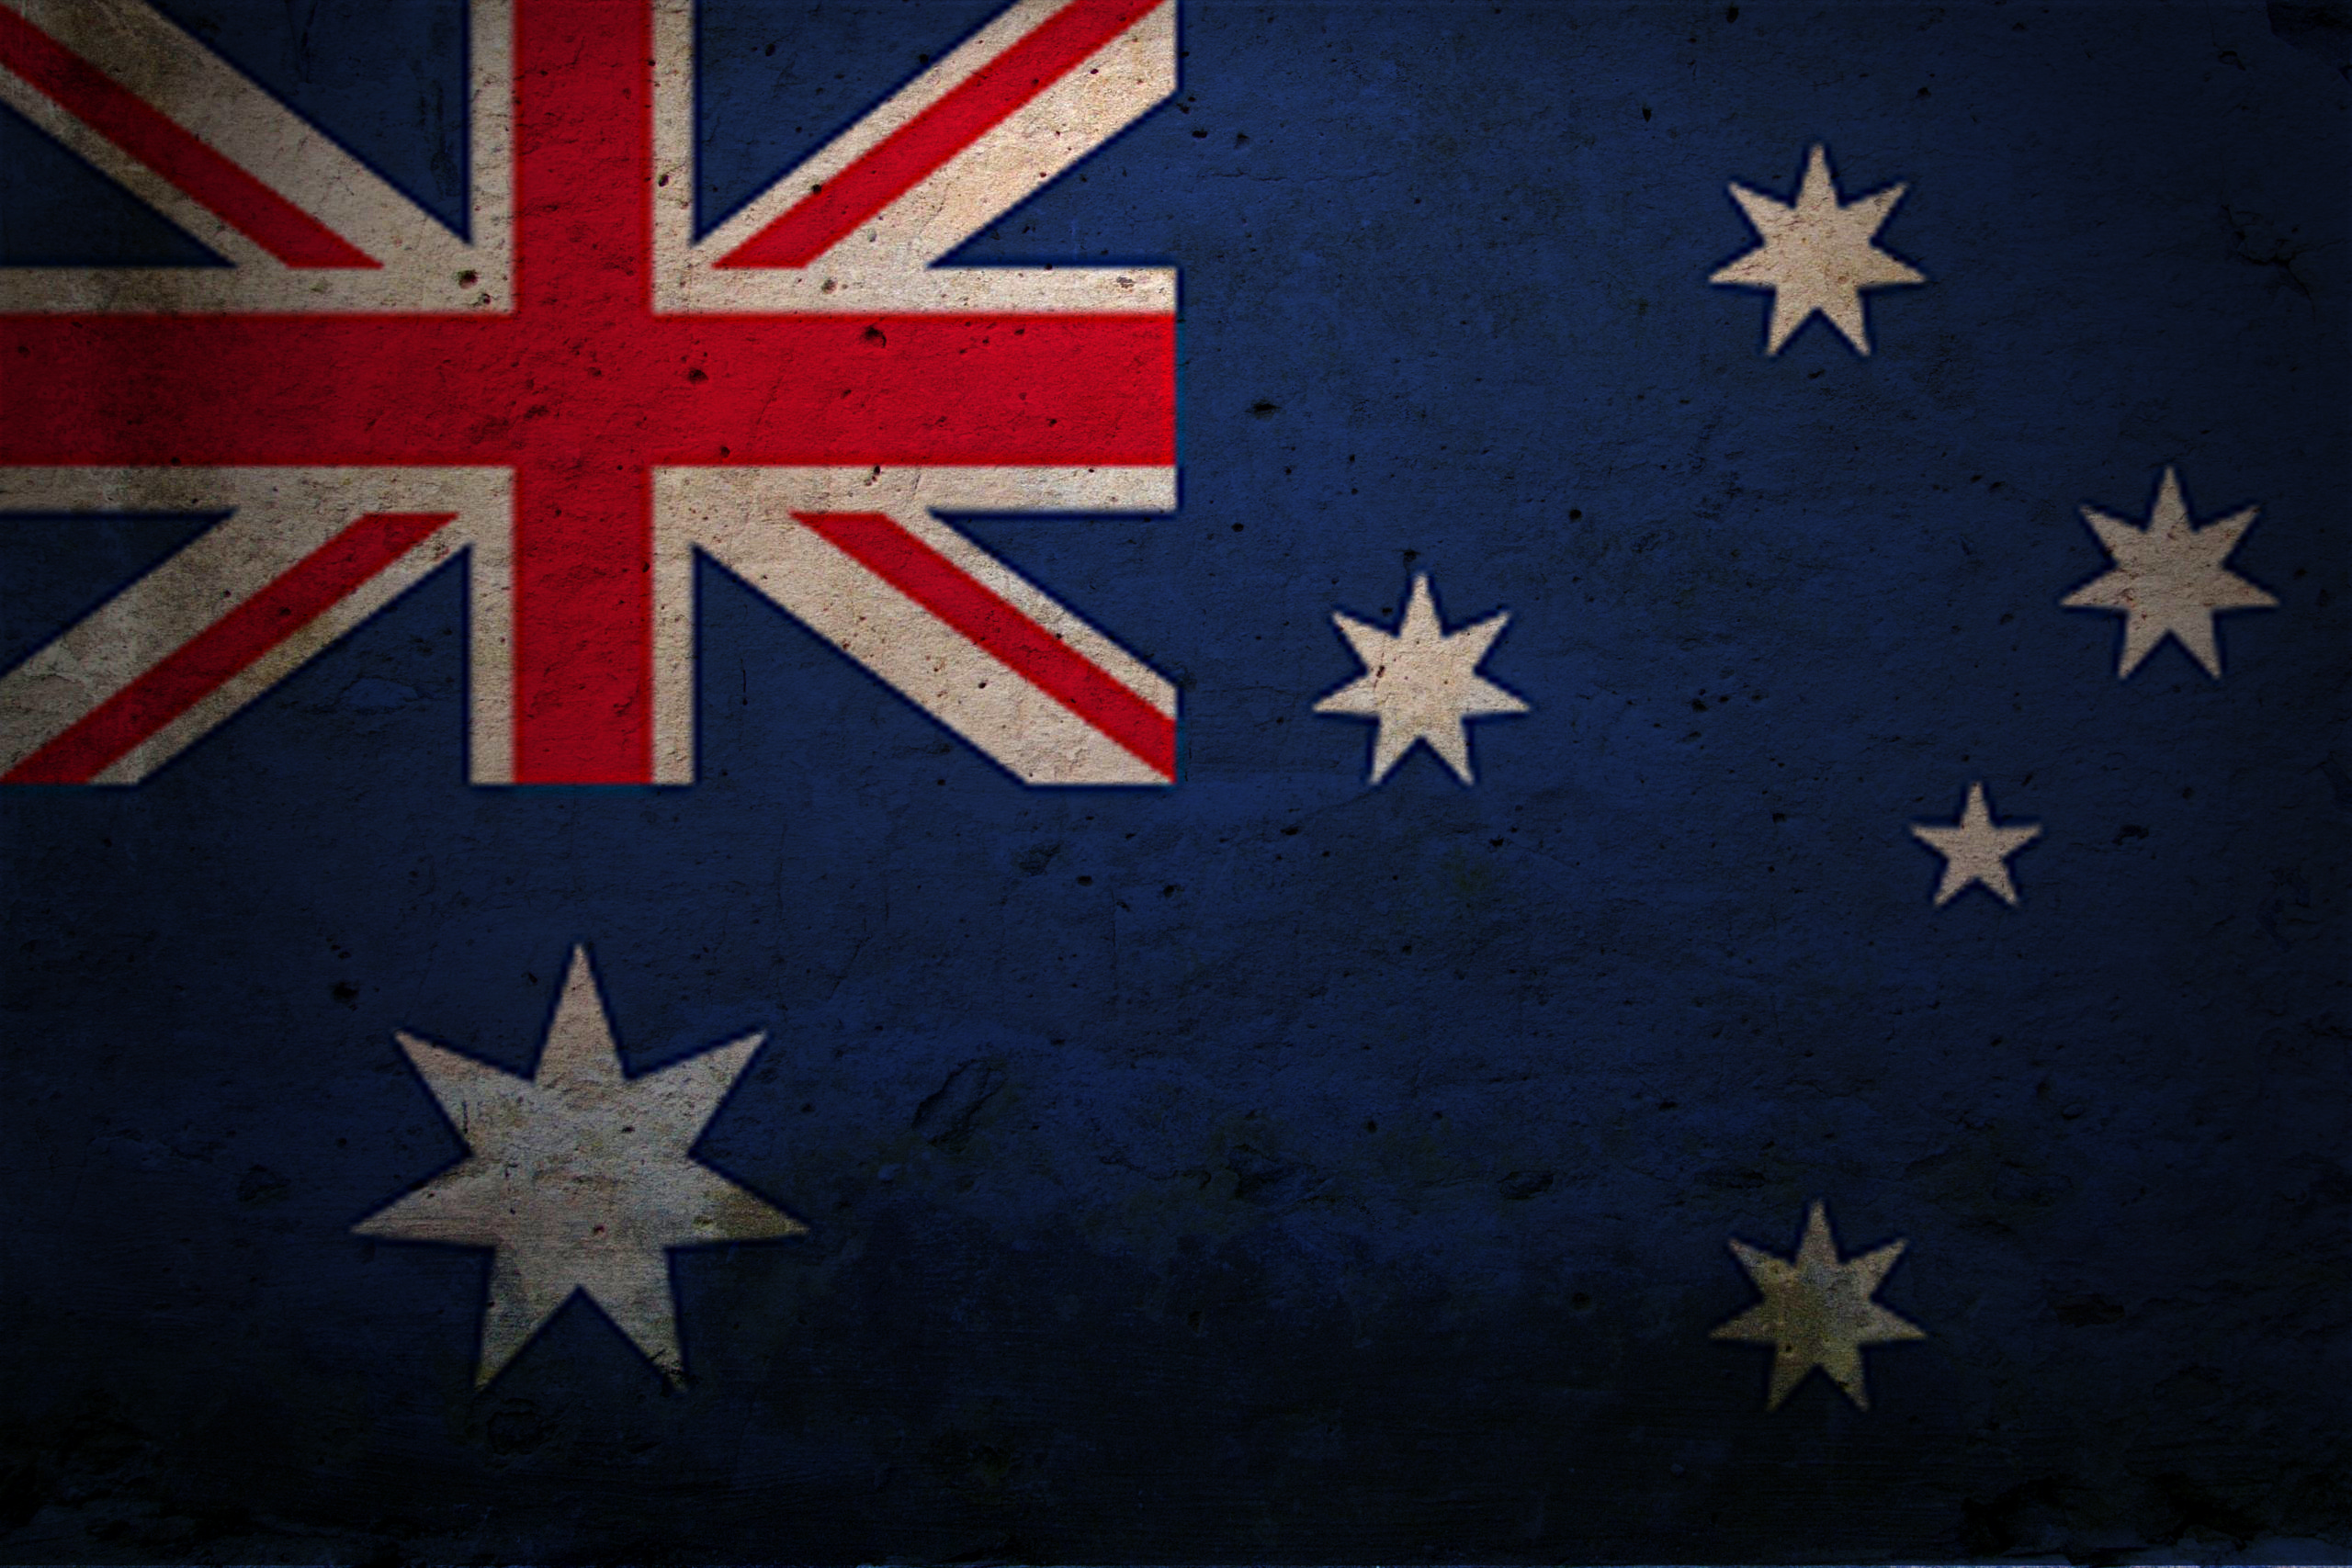 13 Flag Of Australia HD Wallpapers Background Images   Wallpaper 2560x1707